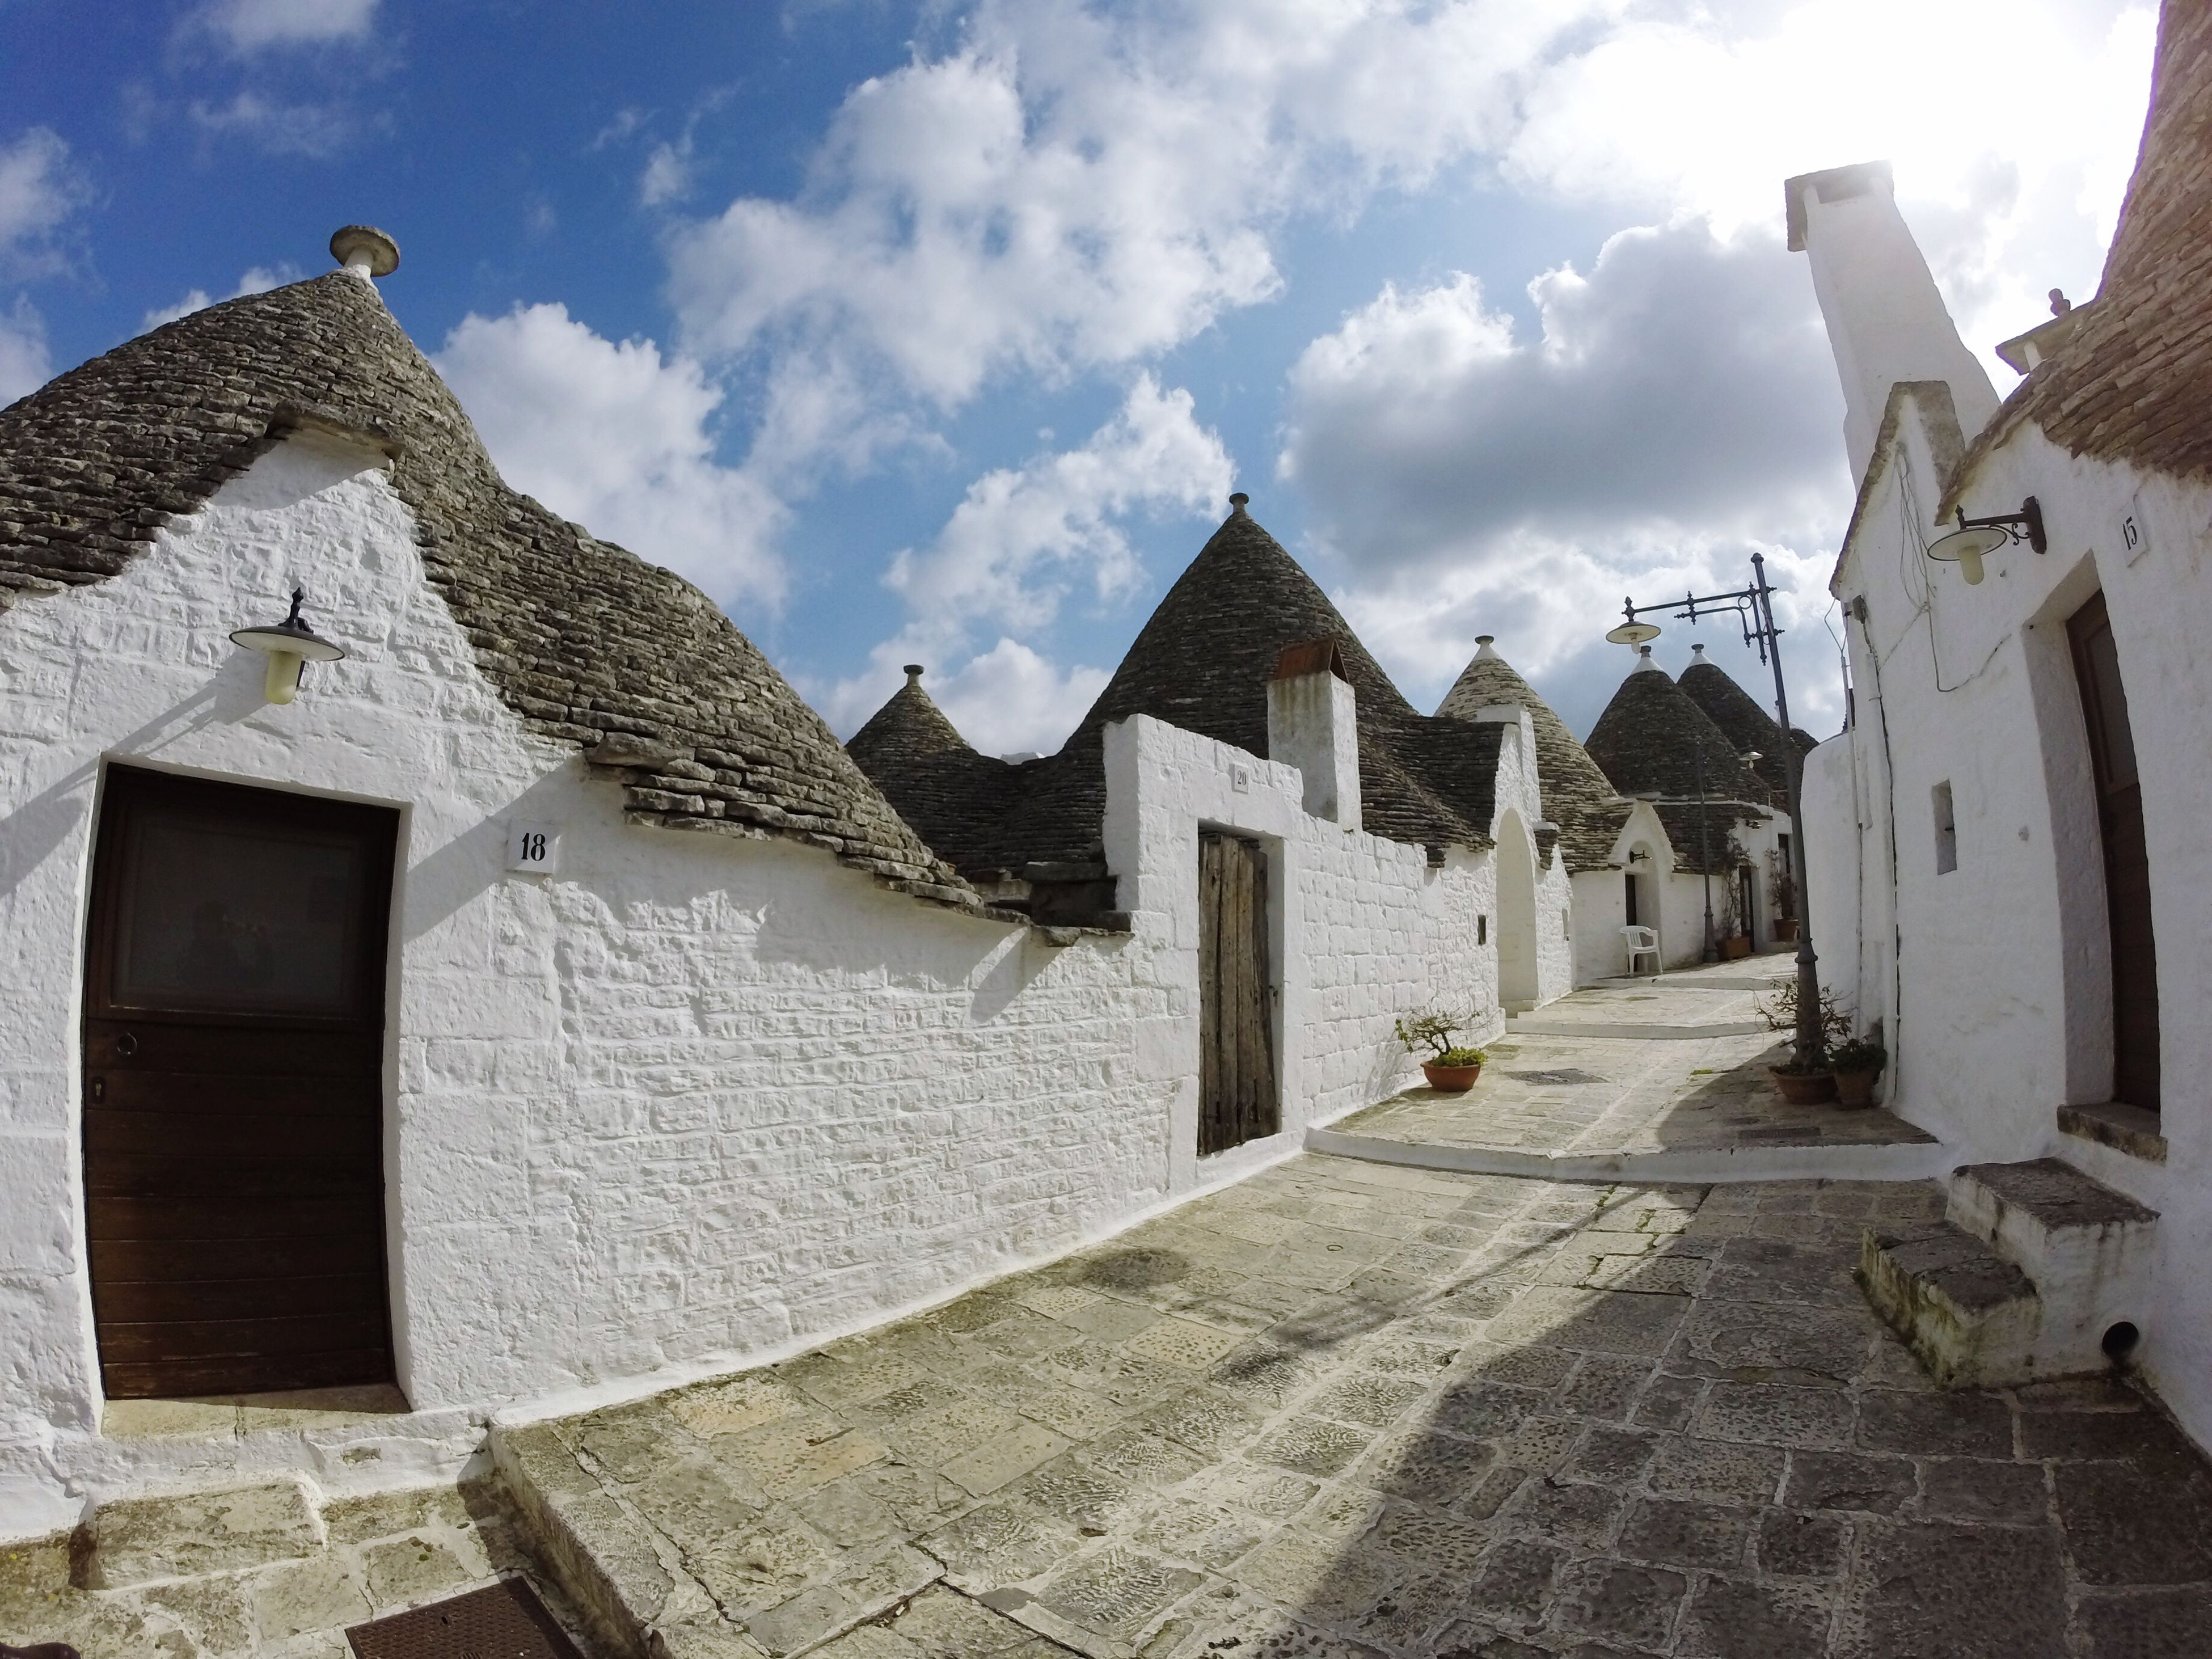 architecture, building exterior, built structure, sky, place of worship, cloud - sky, religion, spirituality, history, cloud, sunlight, church, cobblestone, day, stone wall, outdoors, facade, roof, the way forward